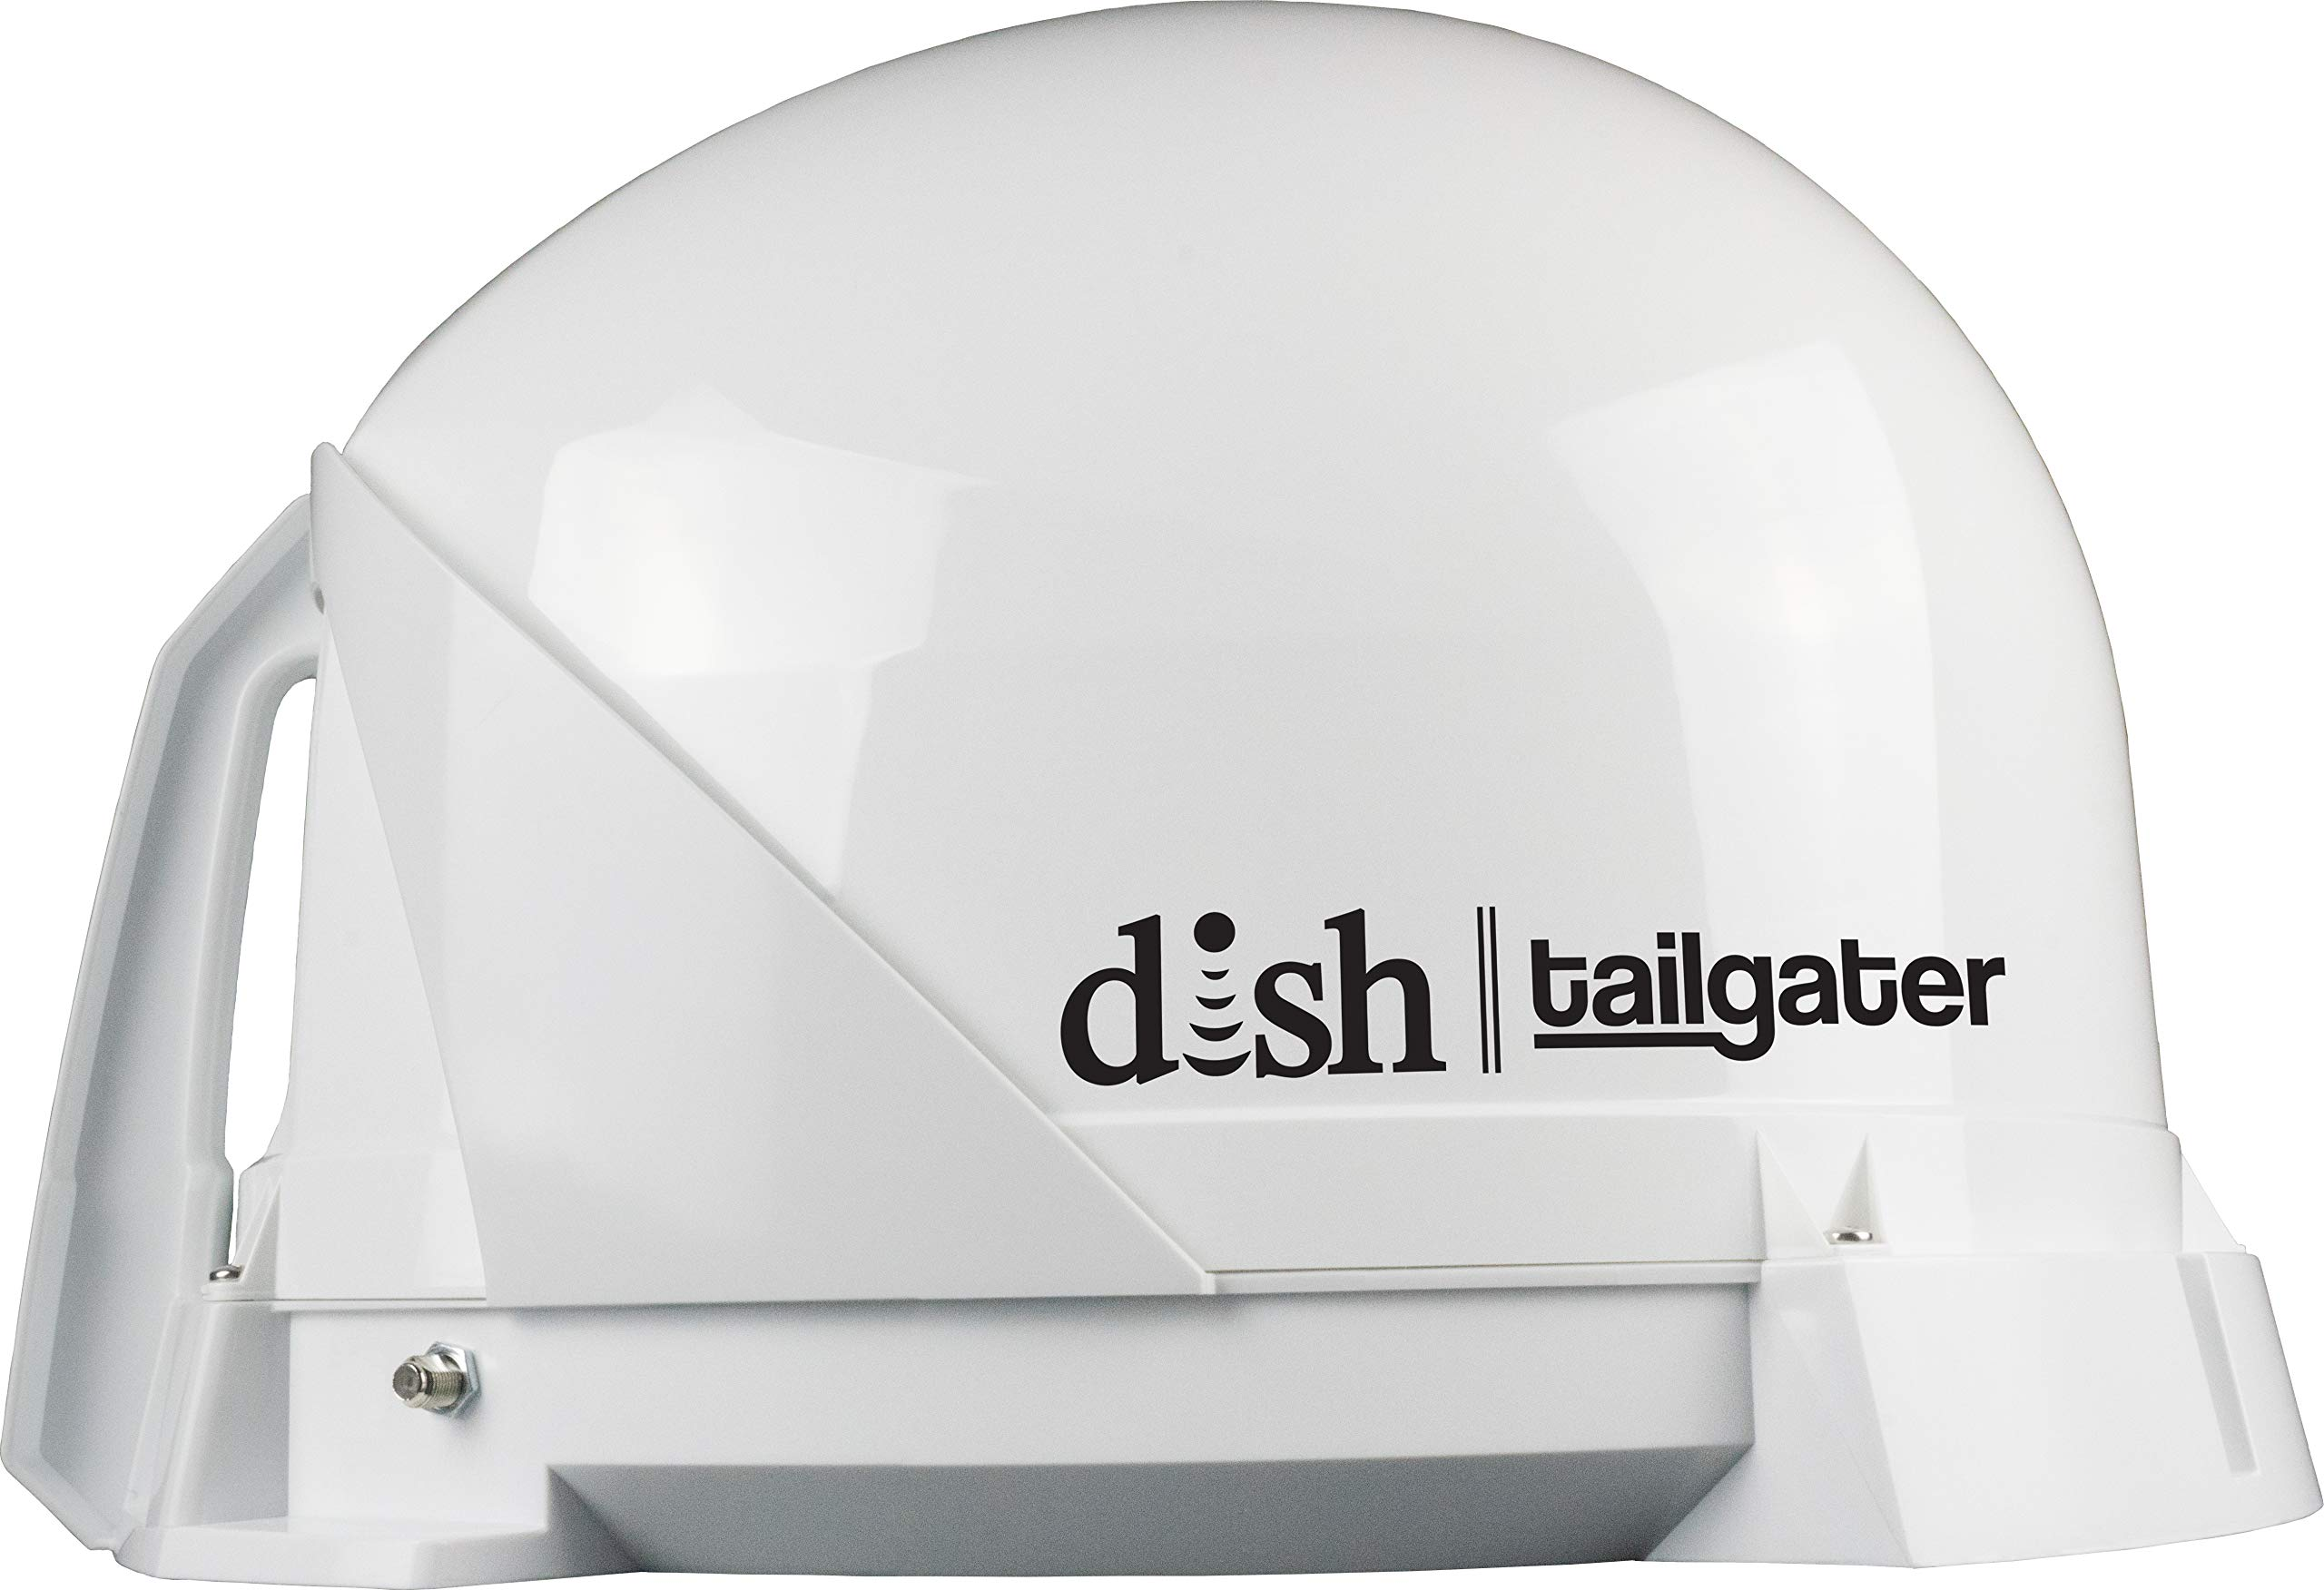 KING DT4400 DISH Tailgater Portable/Roof Mountable Satellite TV Antenna